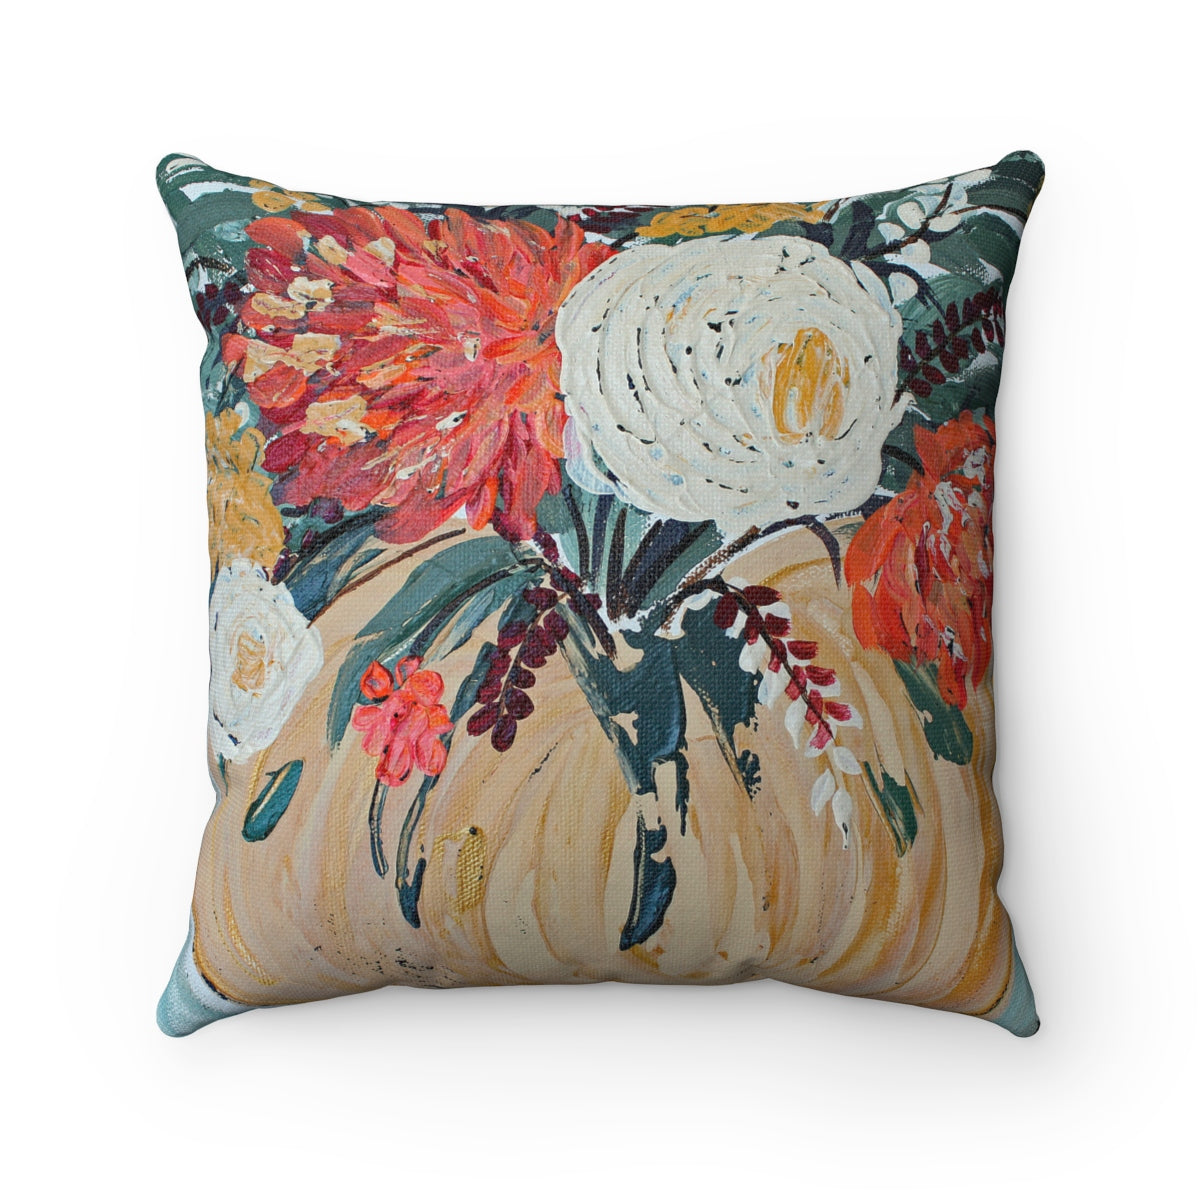 Fall Floral Pumpkin. Spun Polyester Square Pillow with or without case